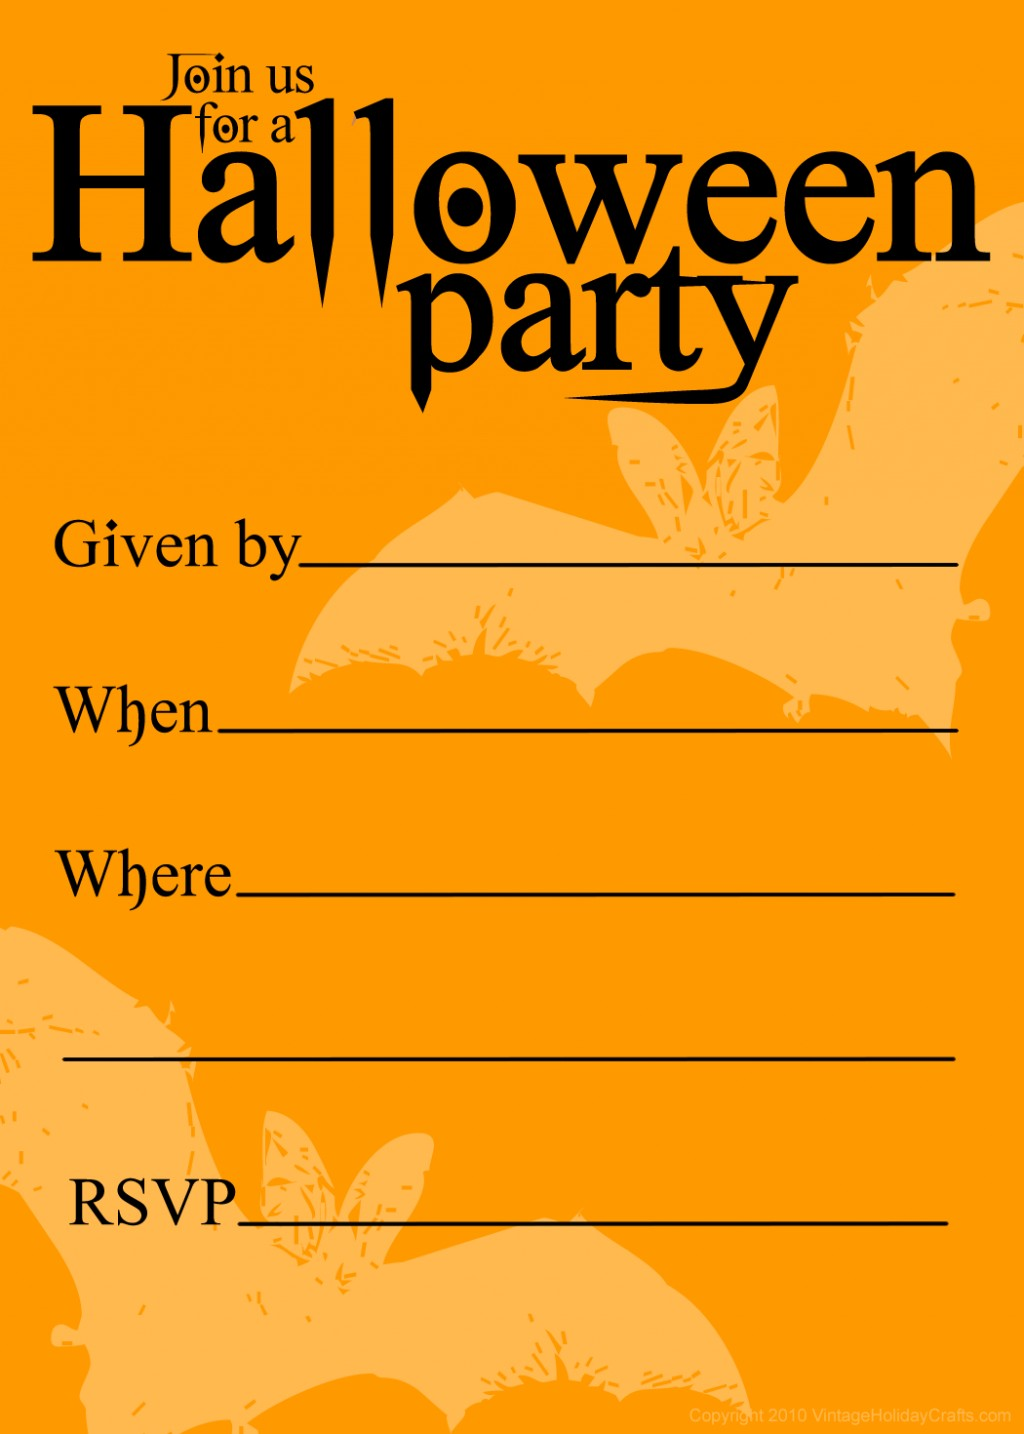 Vintage birthday invitation clipart clipart free download Halloween Party Invitation Clipart. Snowjet.co - Clip Art ... clipart free download